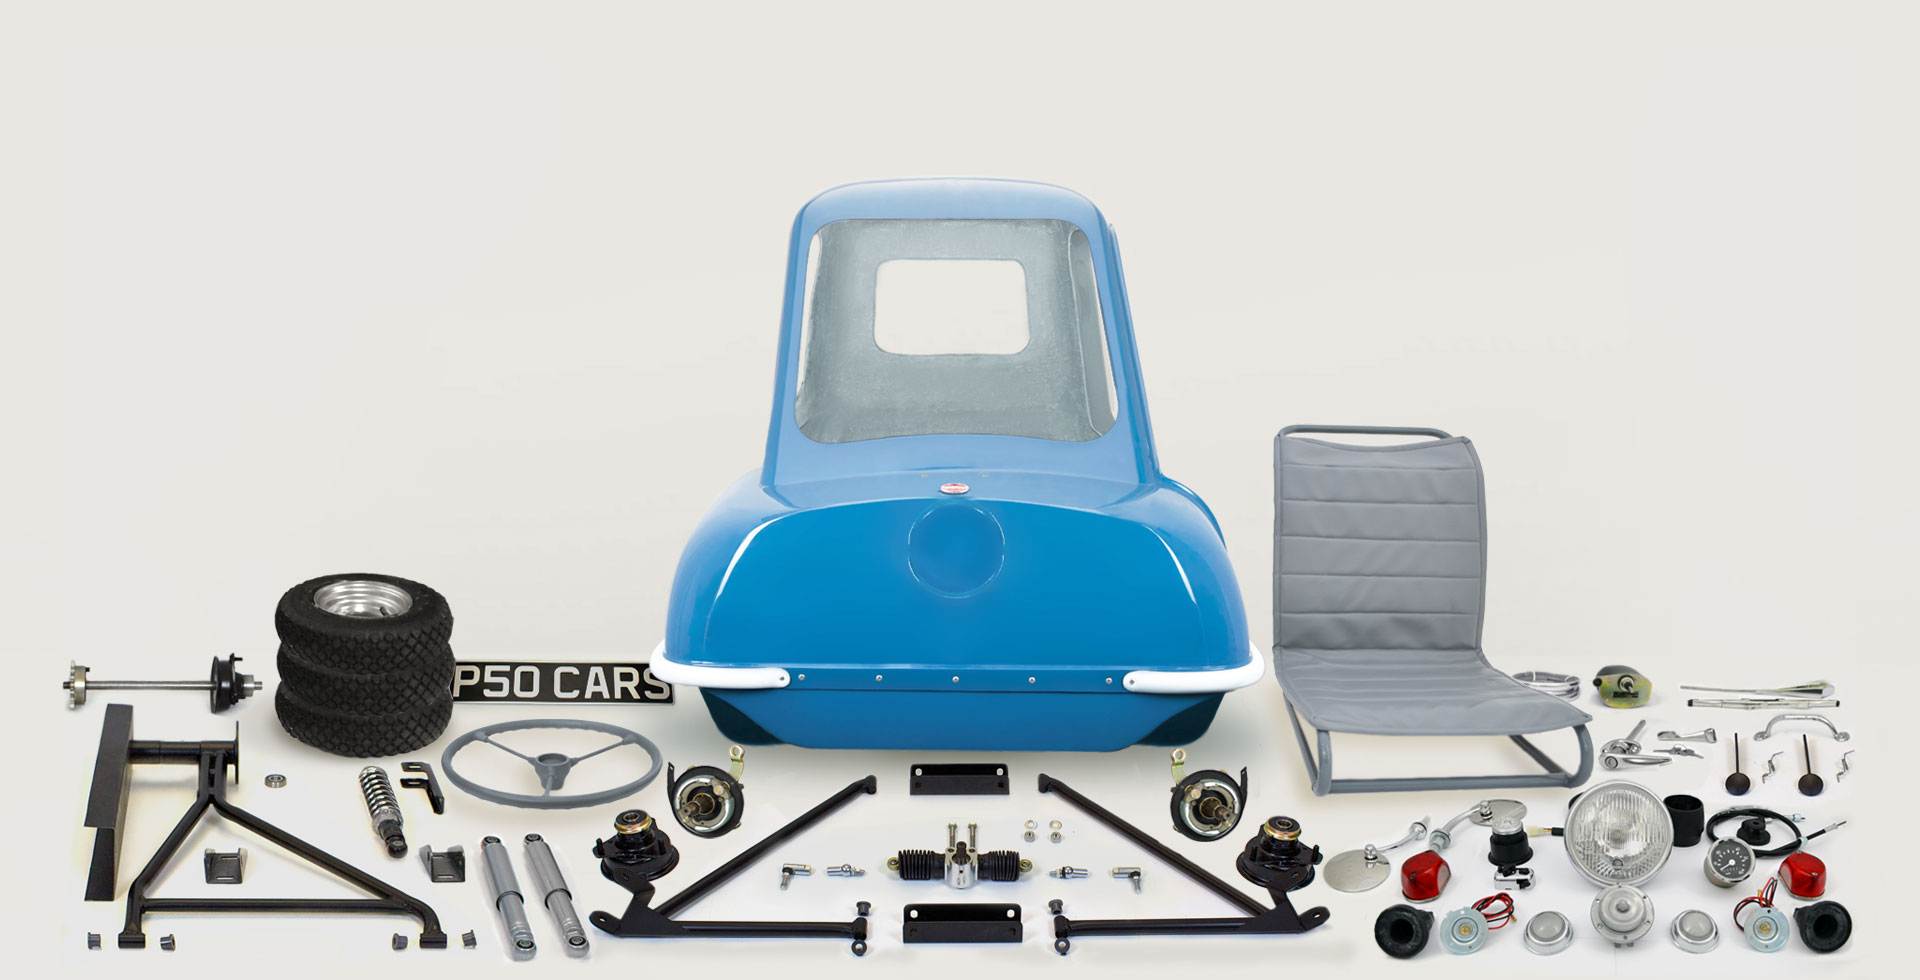 hight resolution of p50 car replica kit parts spares 1962 blue isle